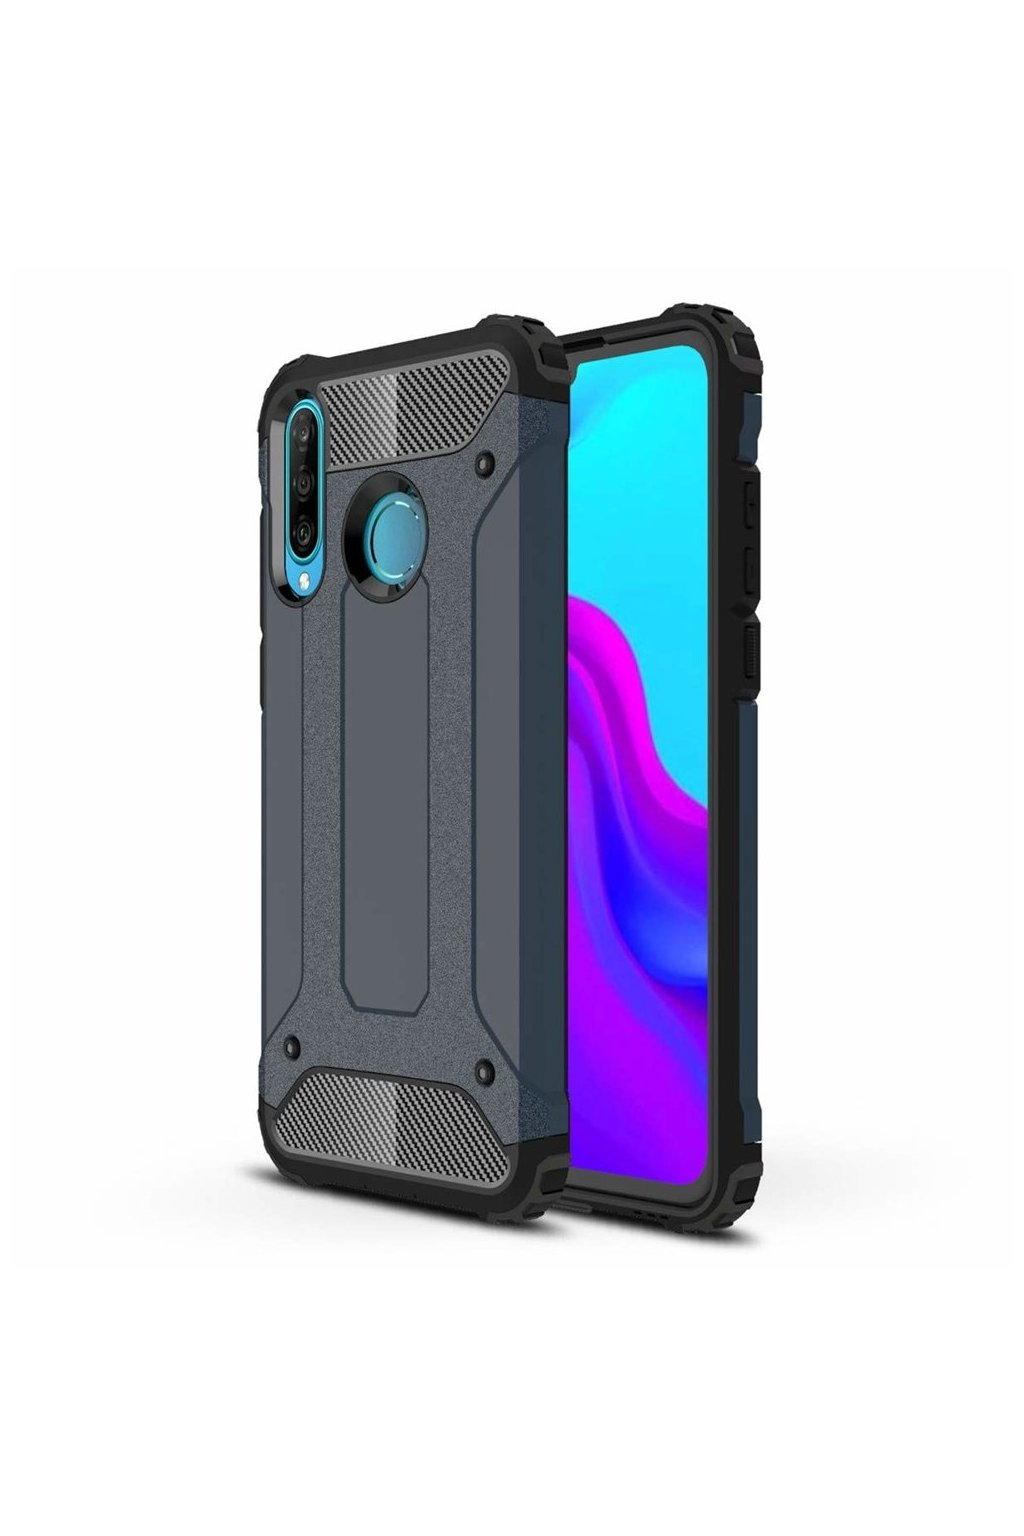 eng pl Hybrid Armor Case Tough Rugged Cover for Huawei P30 Lite blue 49270 1